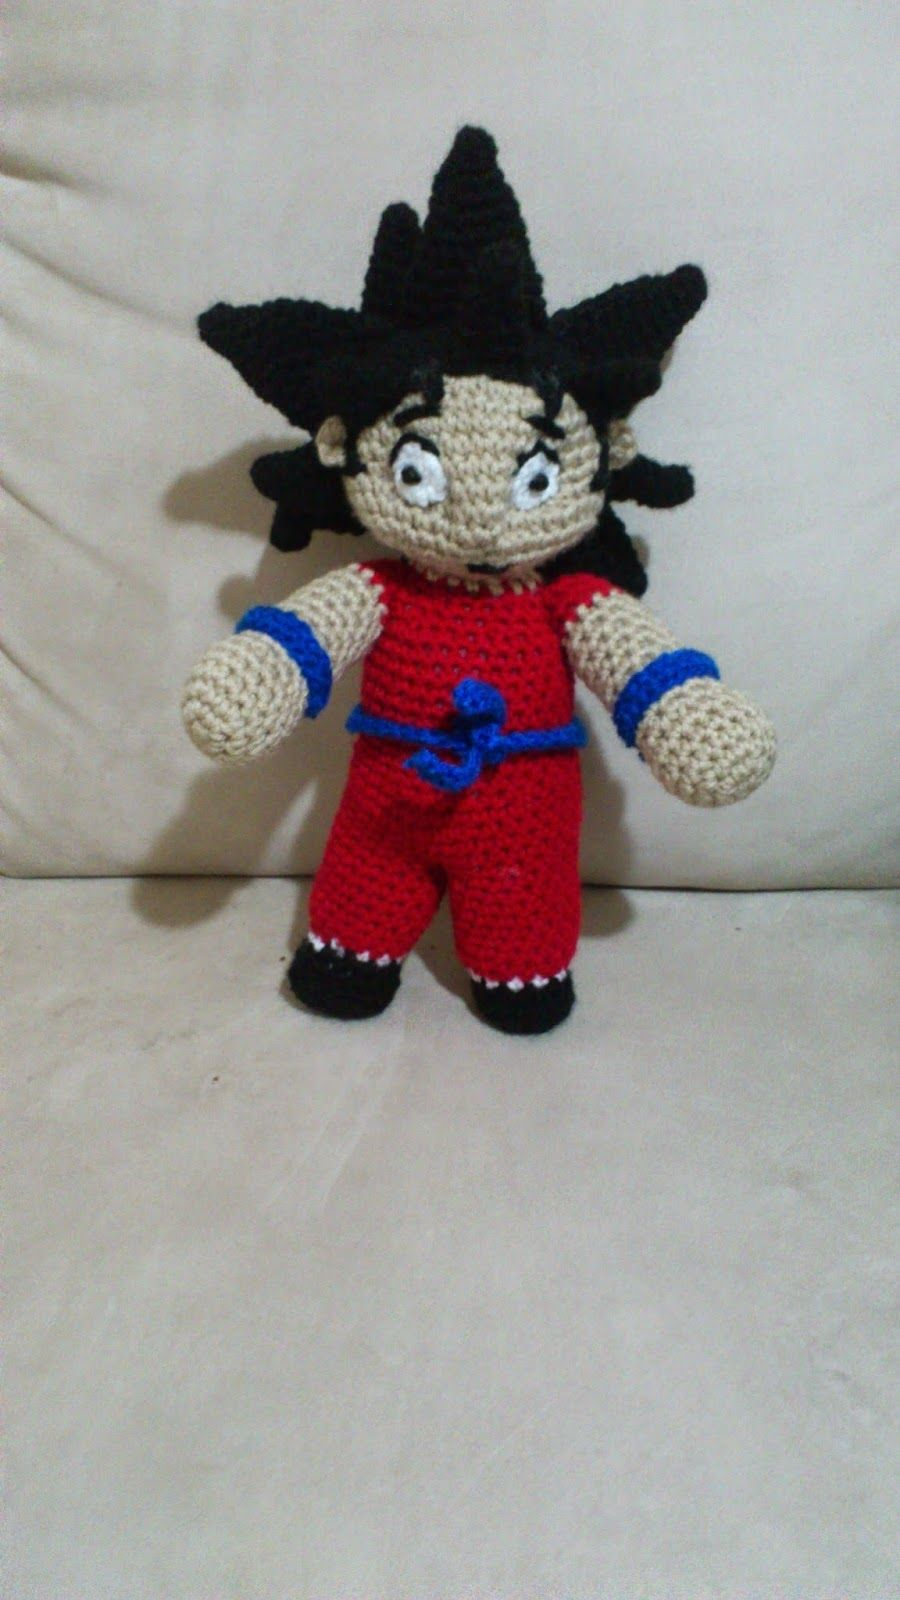 NEWS JENPOALI. Goku. FP 3/15 | Crochet I Like - TV, Movie or Video ...